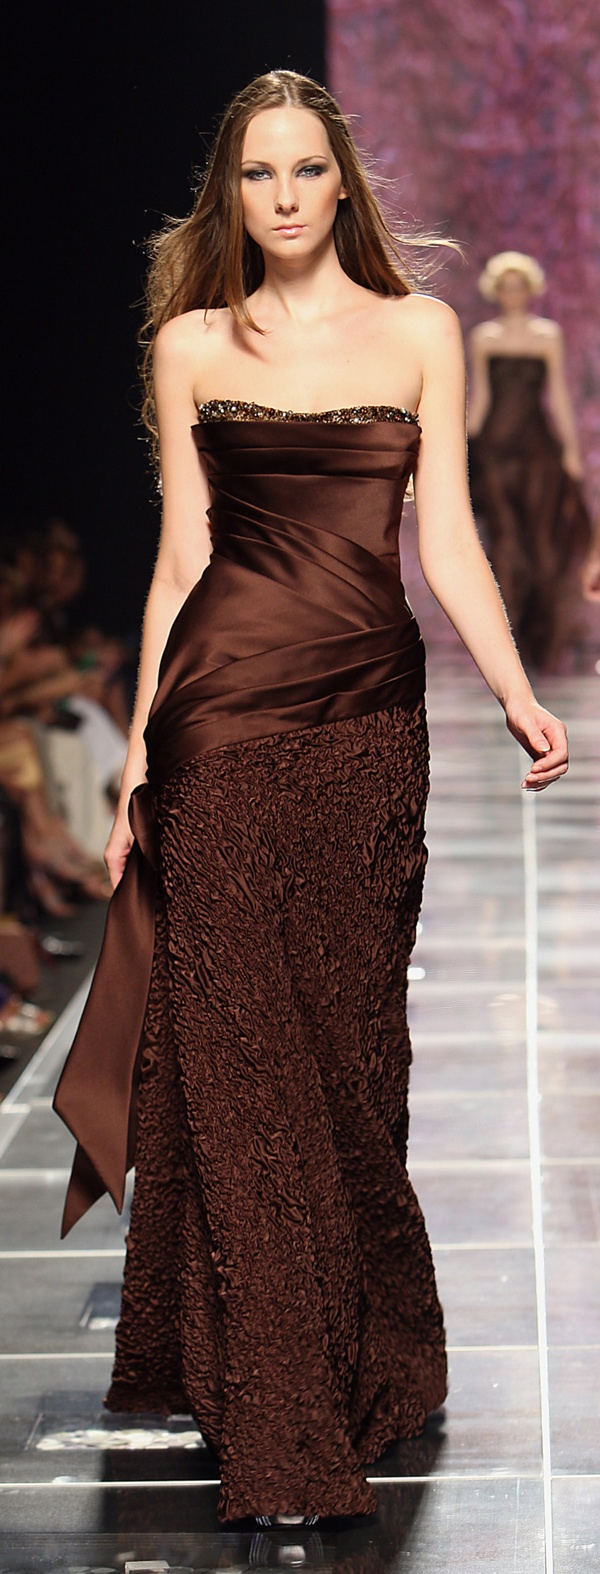 1004 best Evening gowns images on Pinterest   Evening gowns, Haute ...